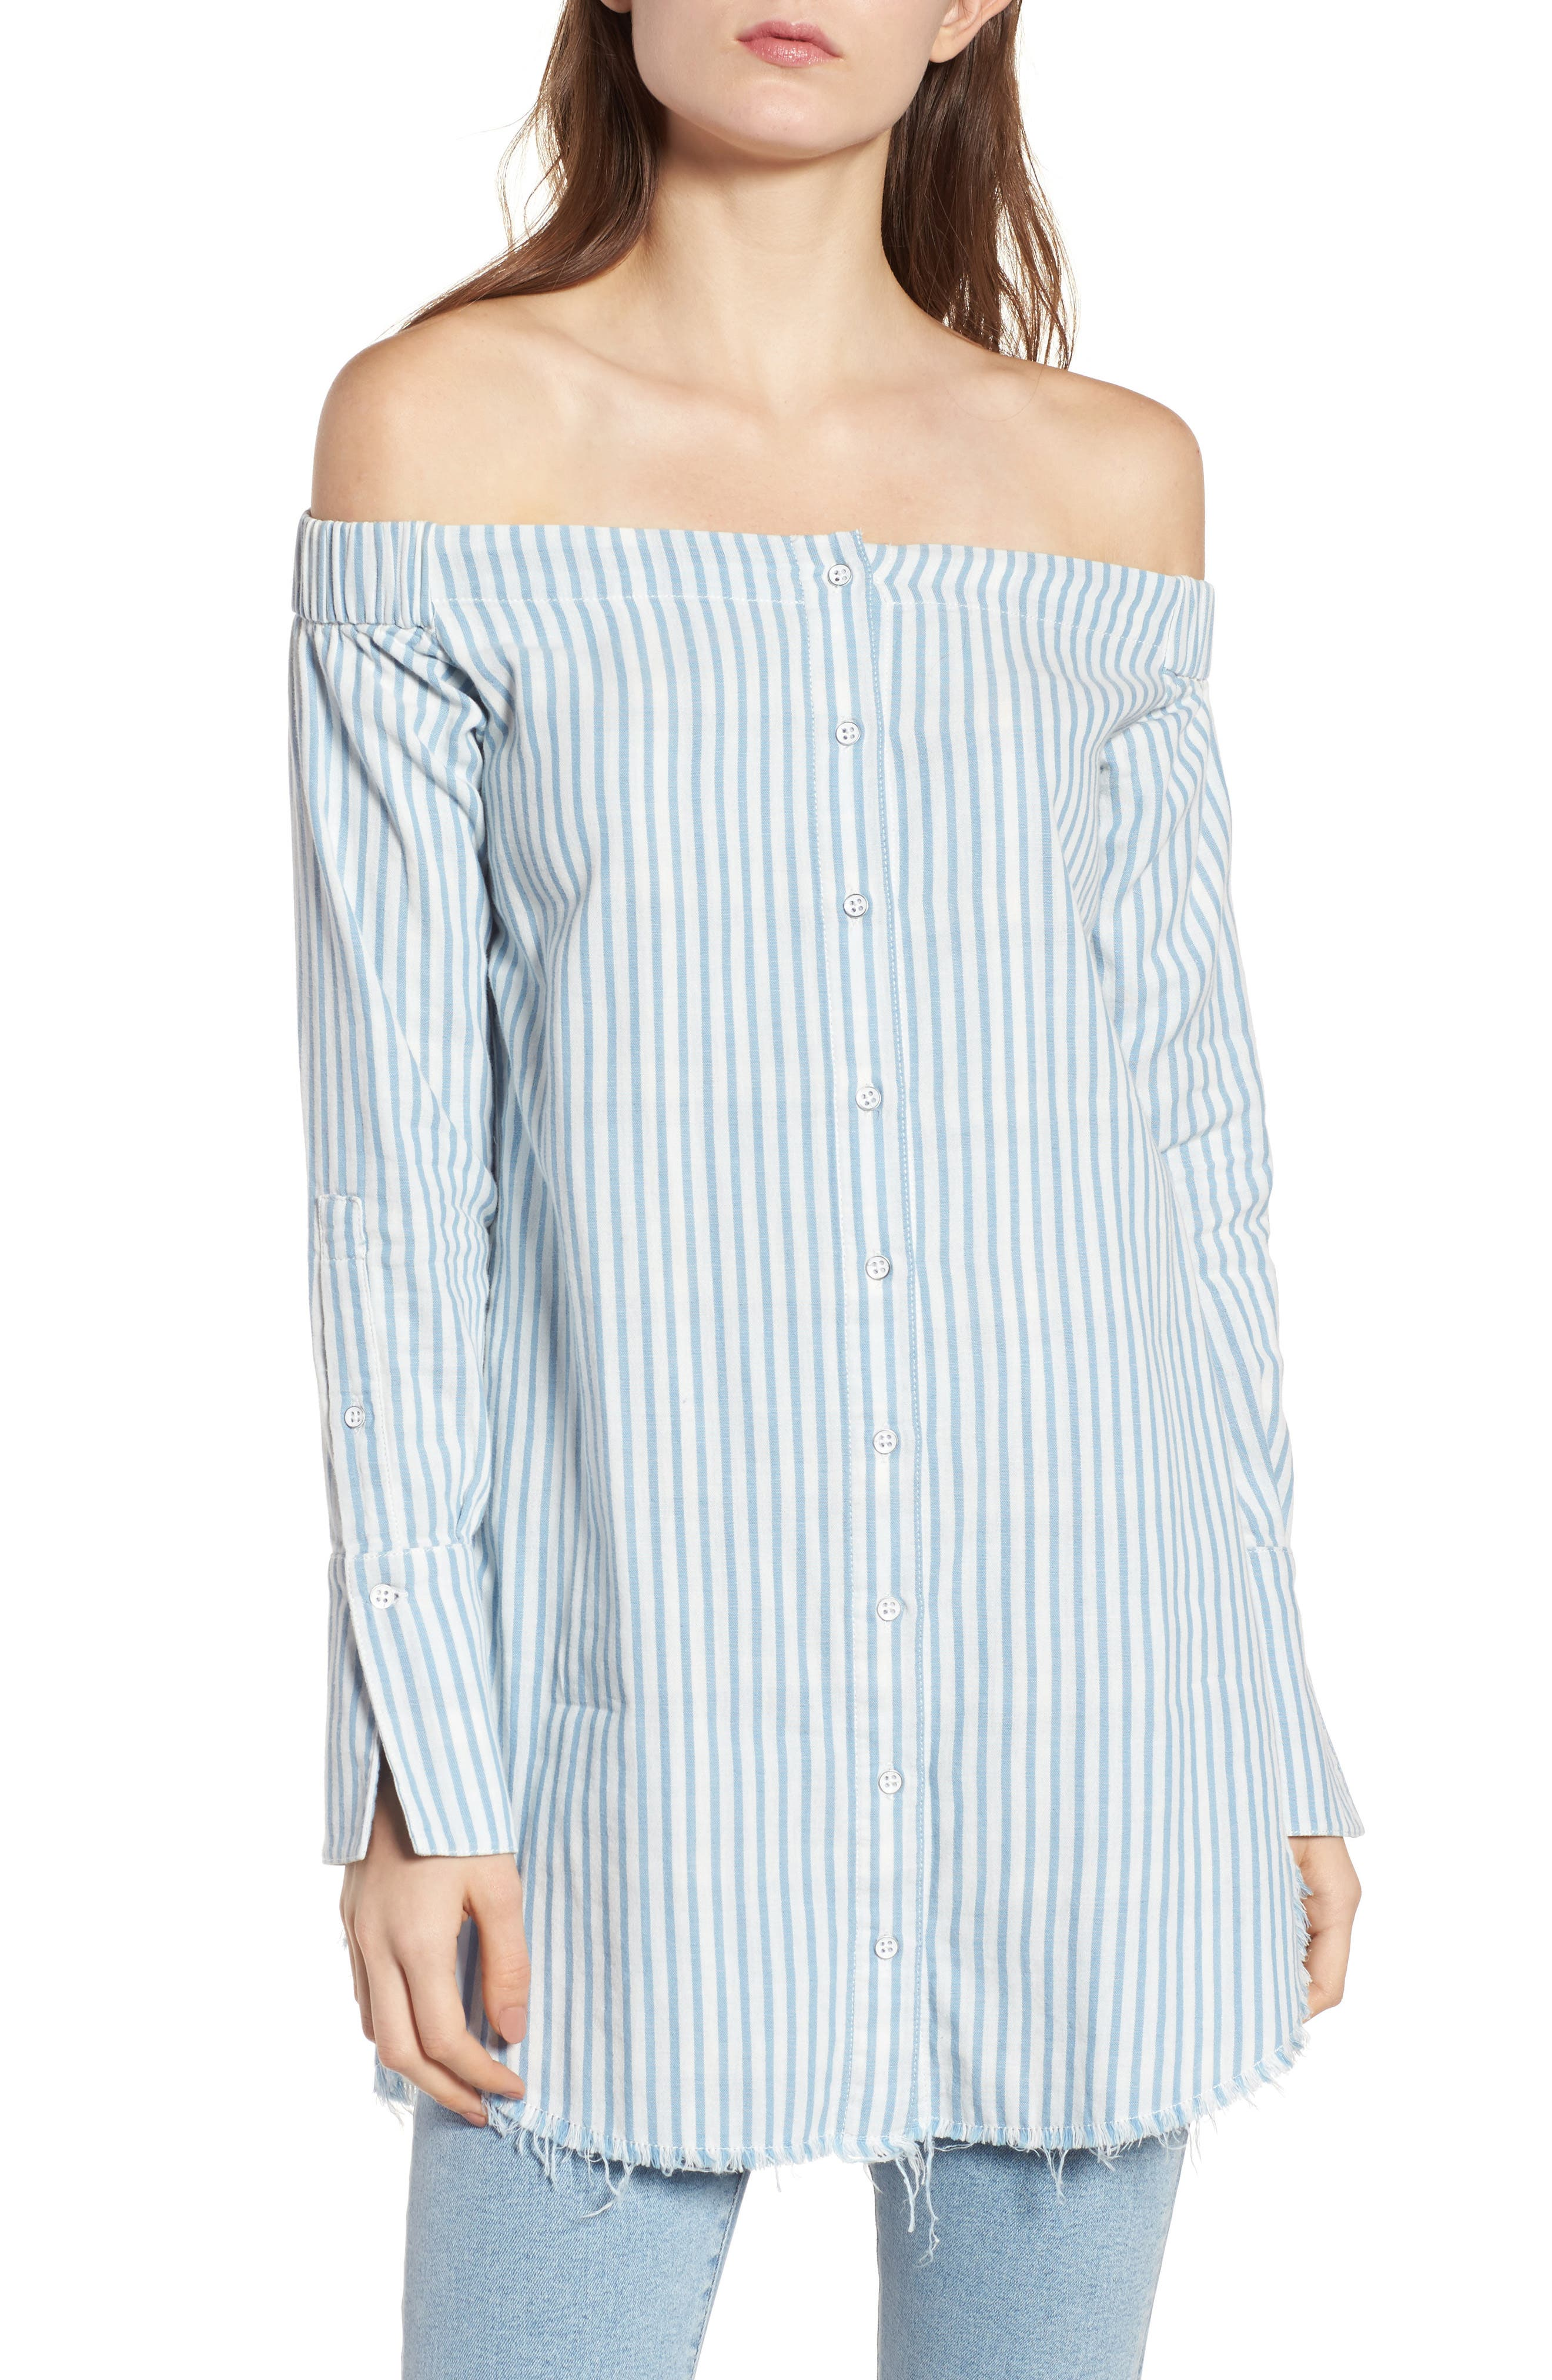 Adelphi & Willoughby Off the Shoulder Shirt,                             Main thumbnail 1, color,                             430